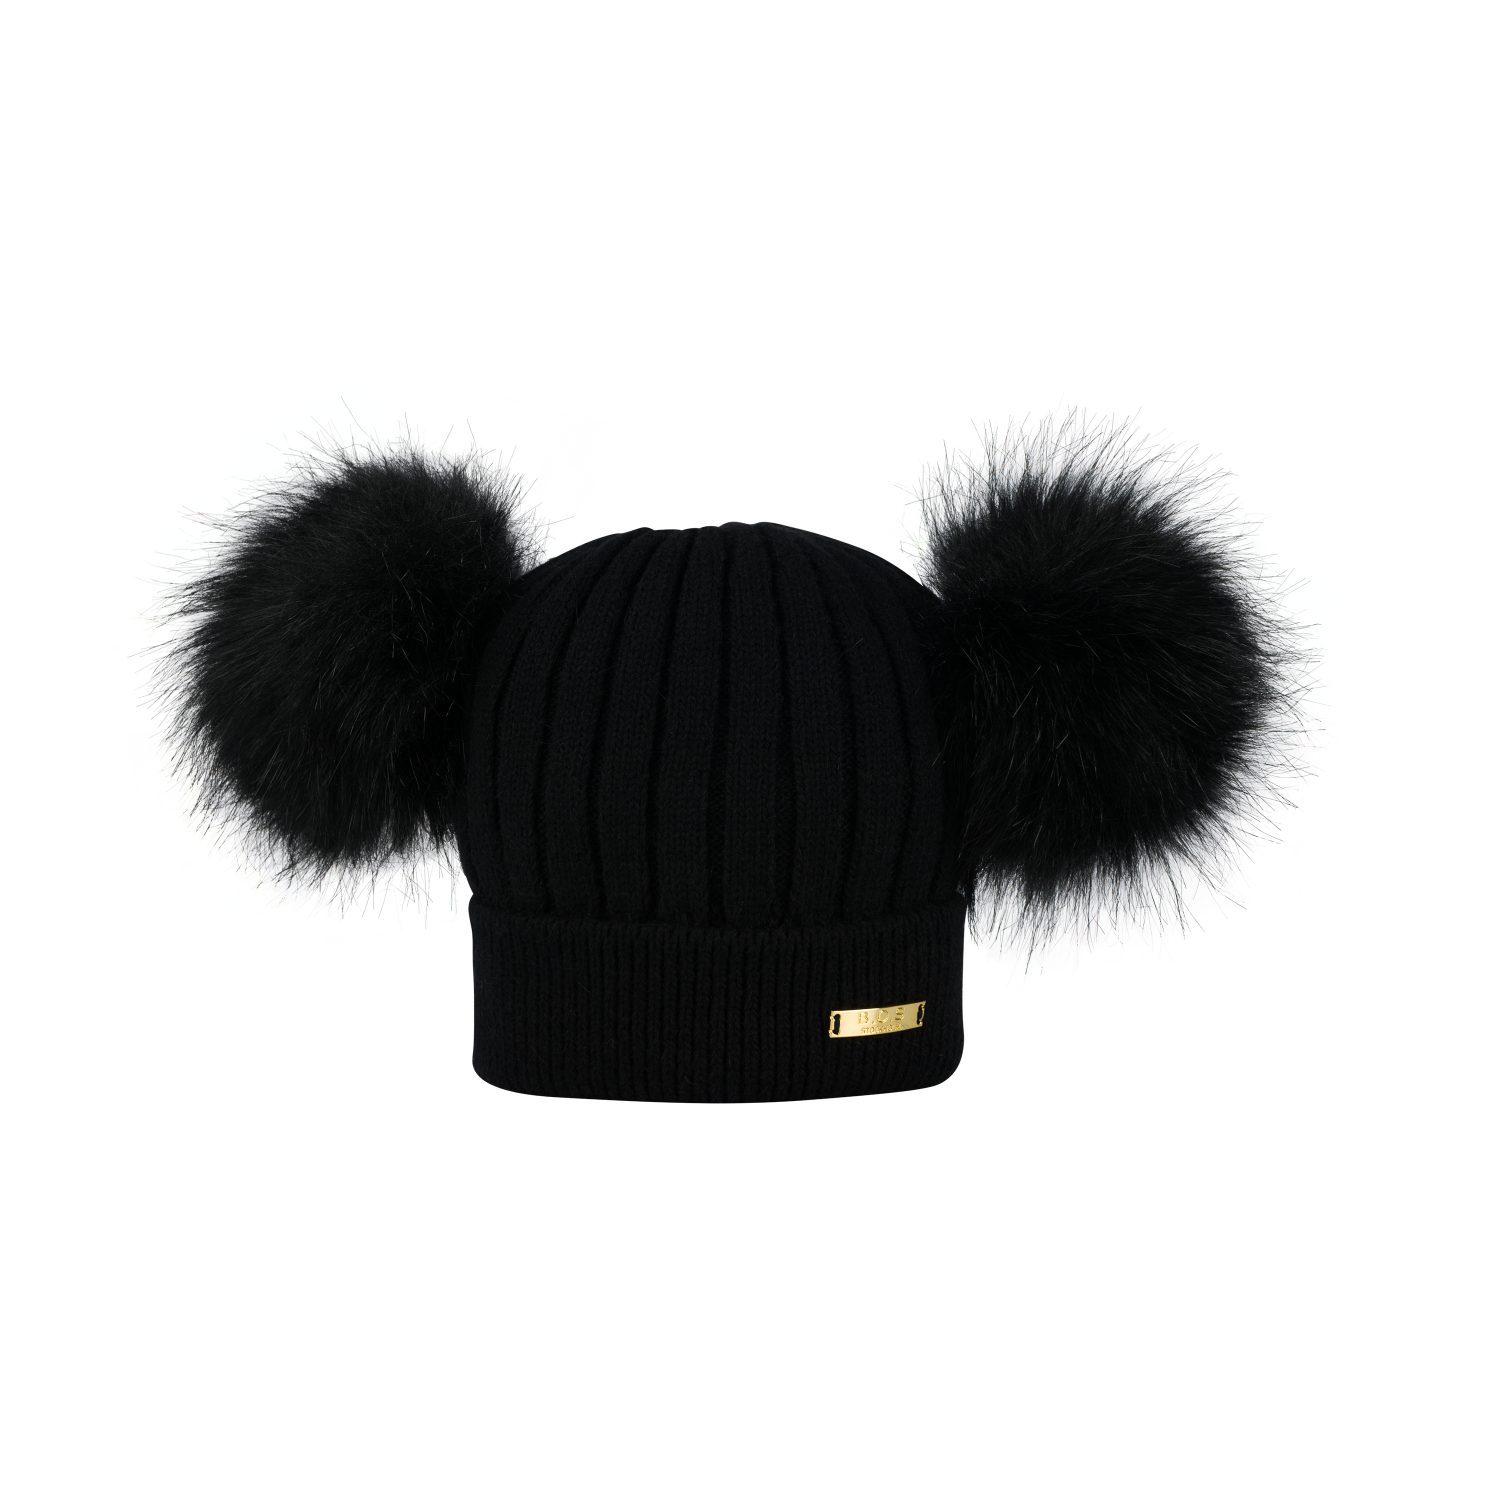 Knitted winter hat Black